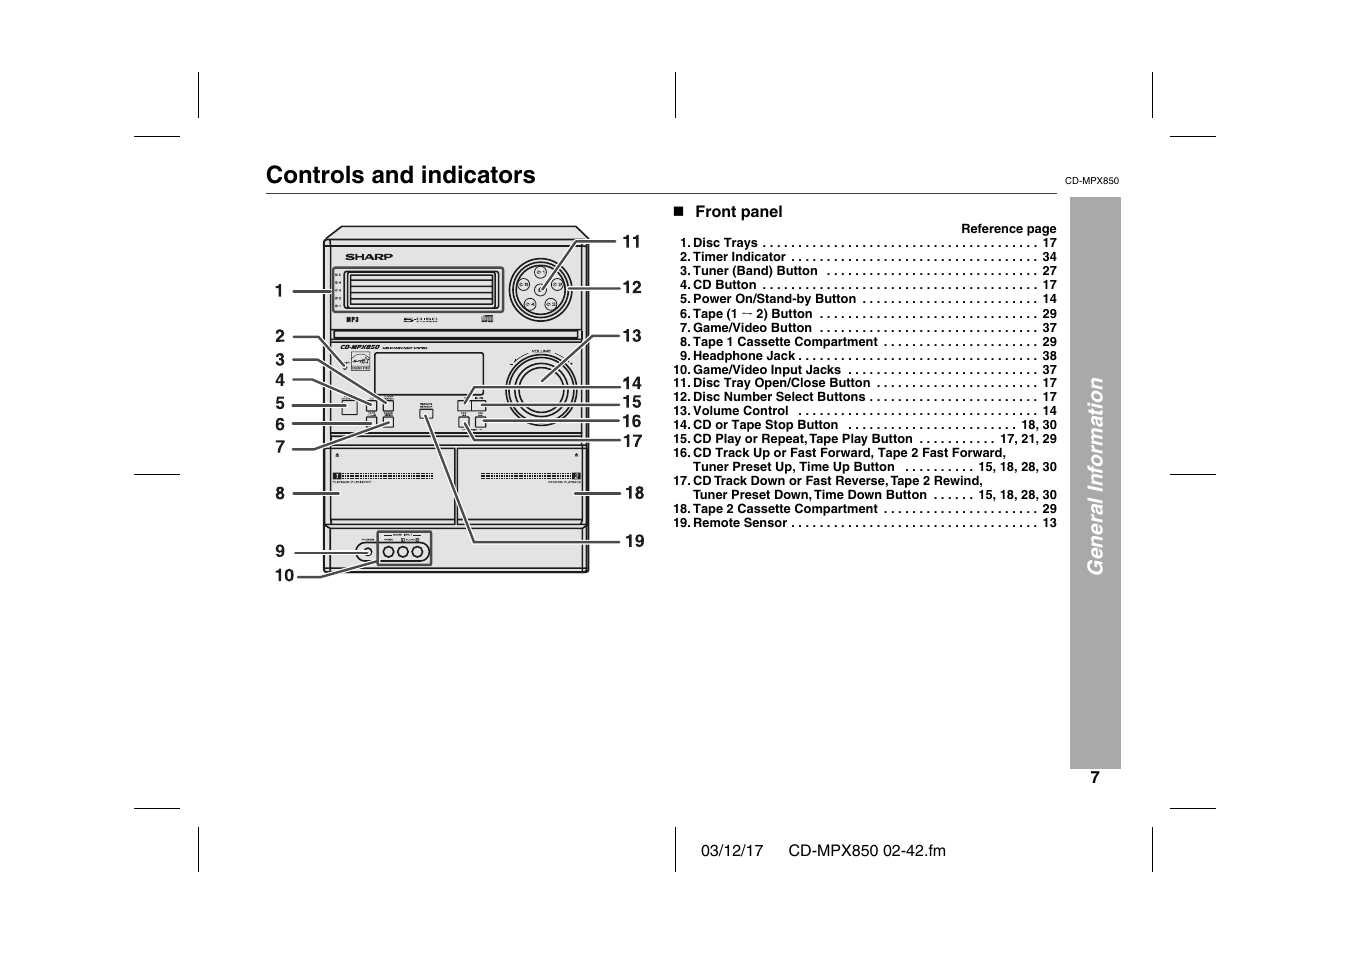 General information, Controls and indicators, Graphic